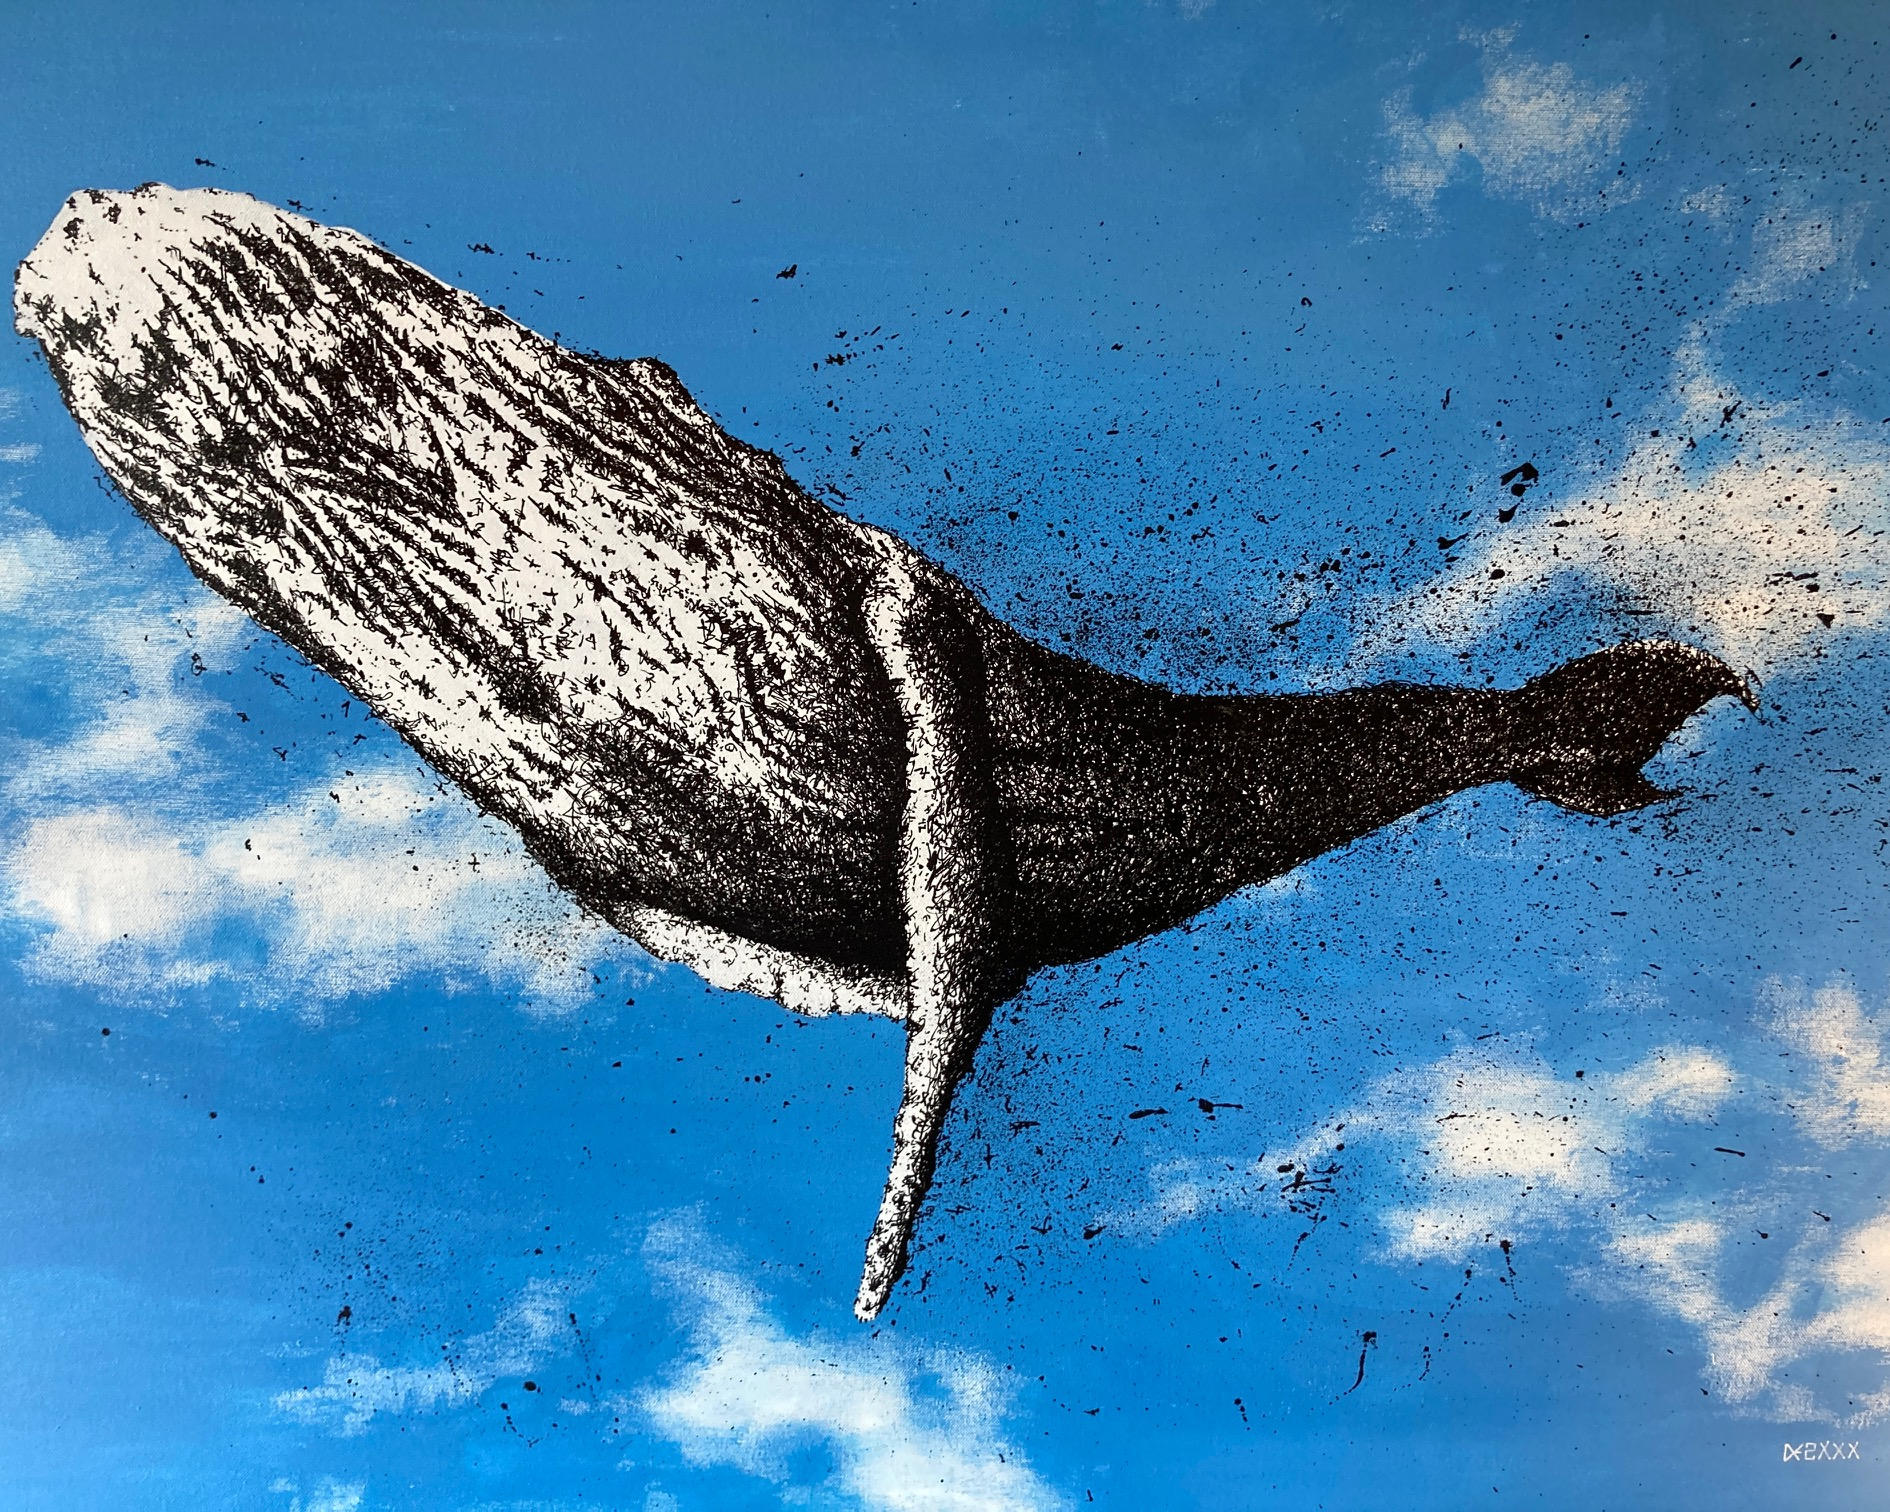 sky, the flying whale